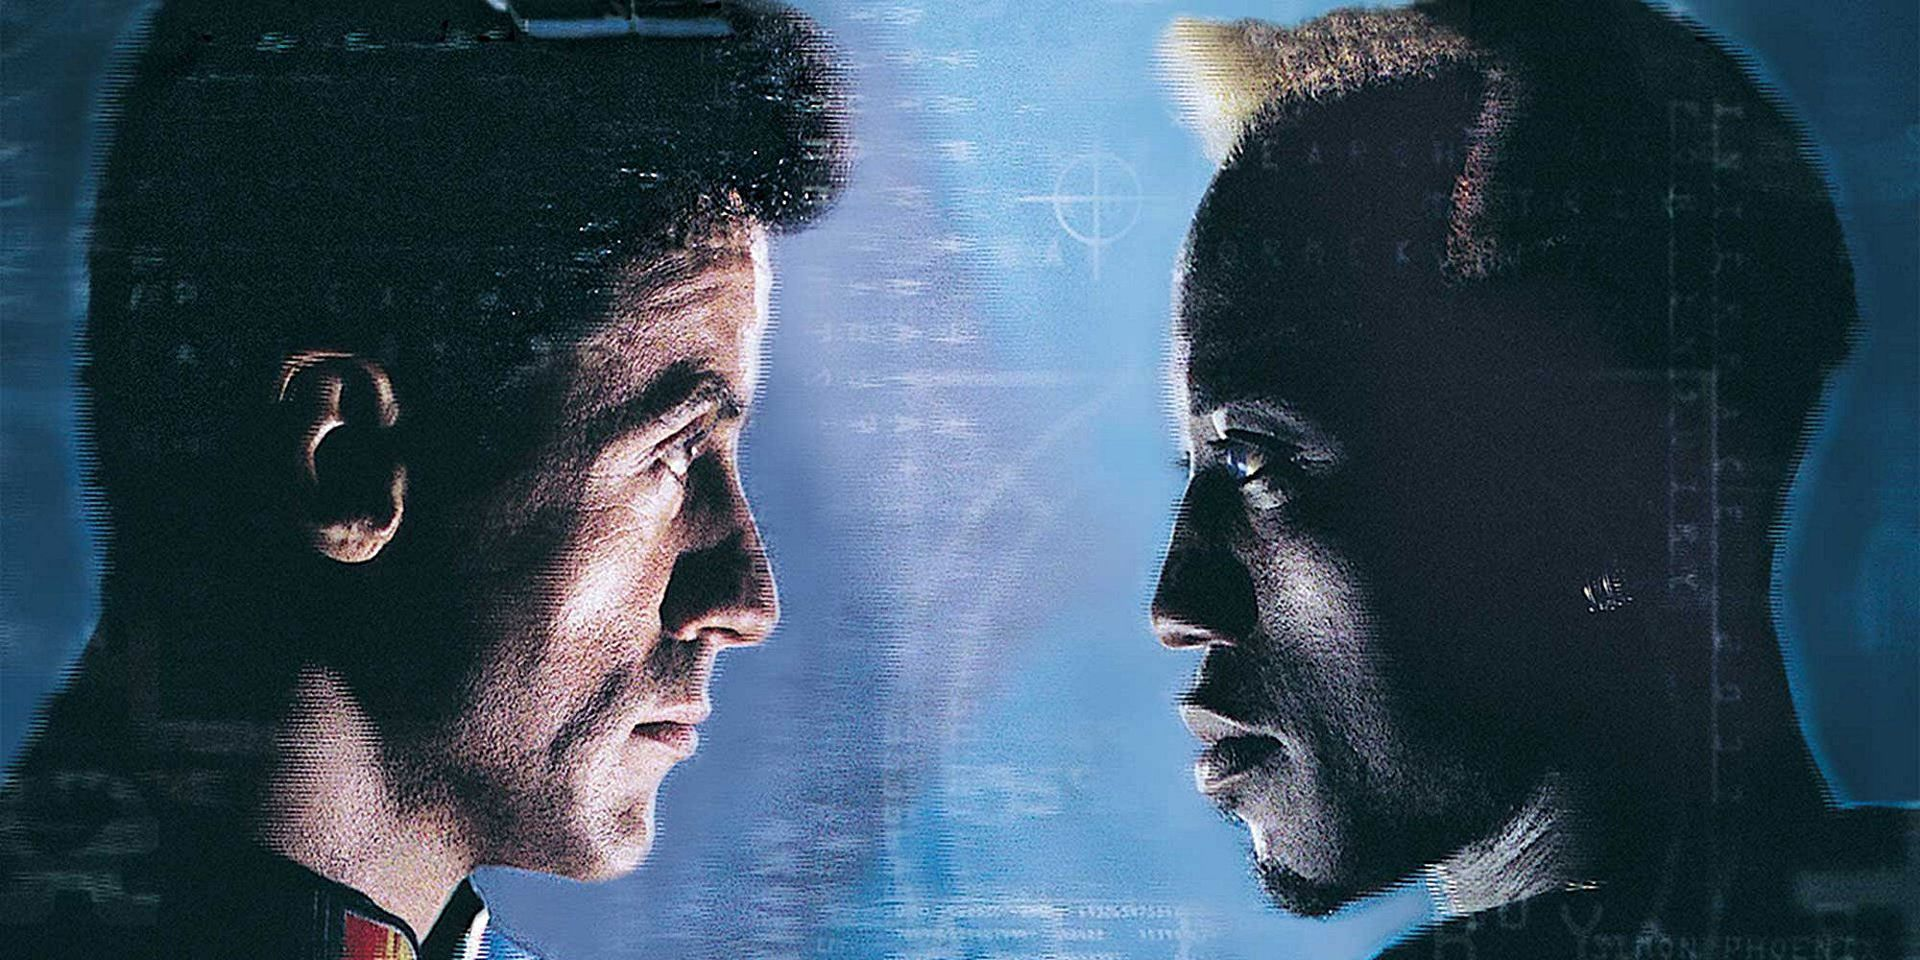 Demolition Man Sequel Is in the Works